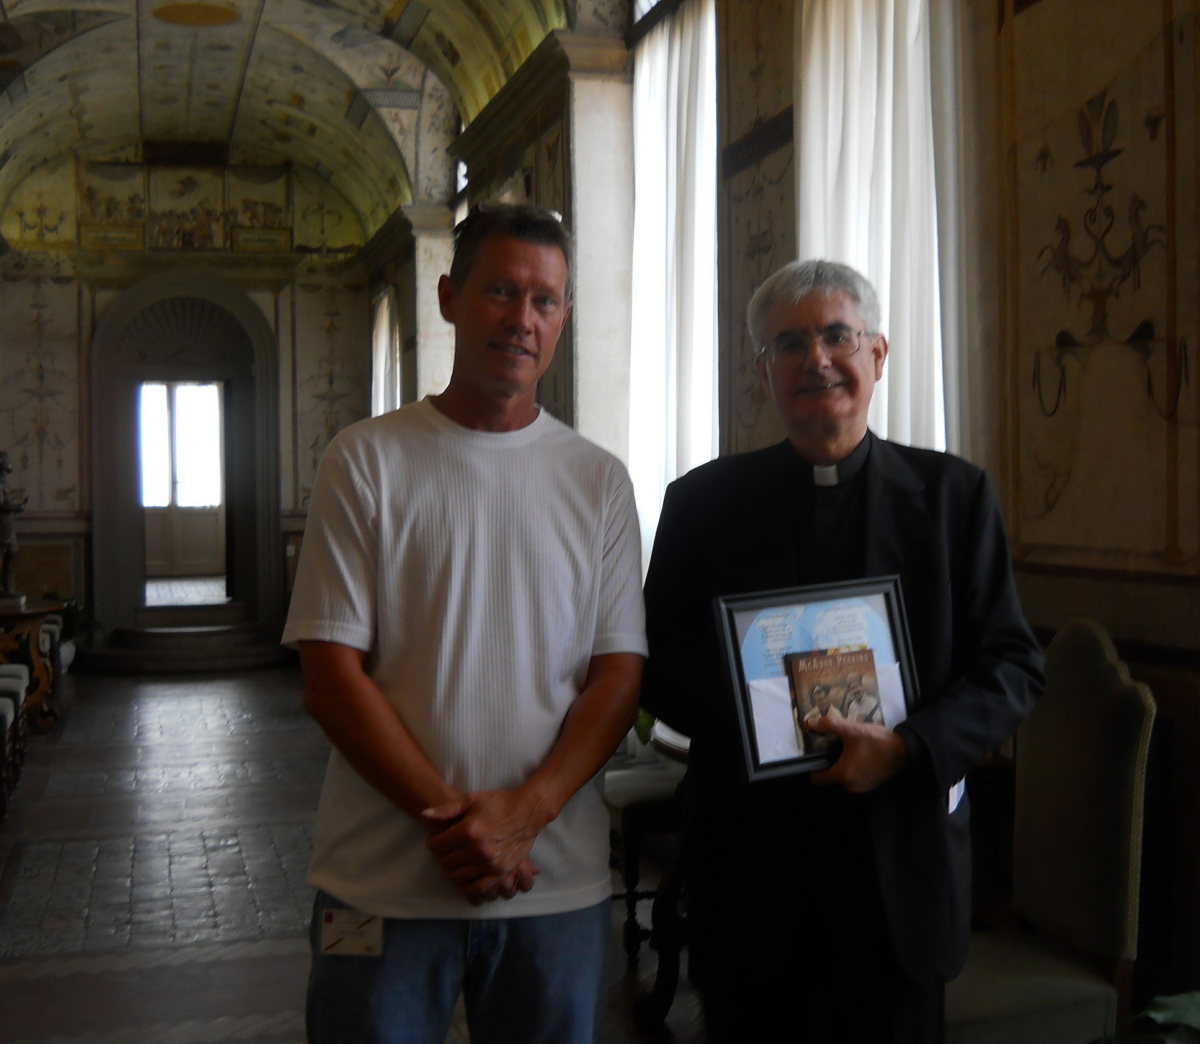 Meeting the Monsignor